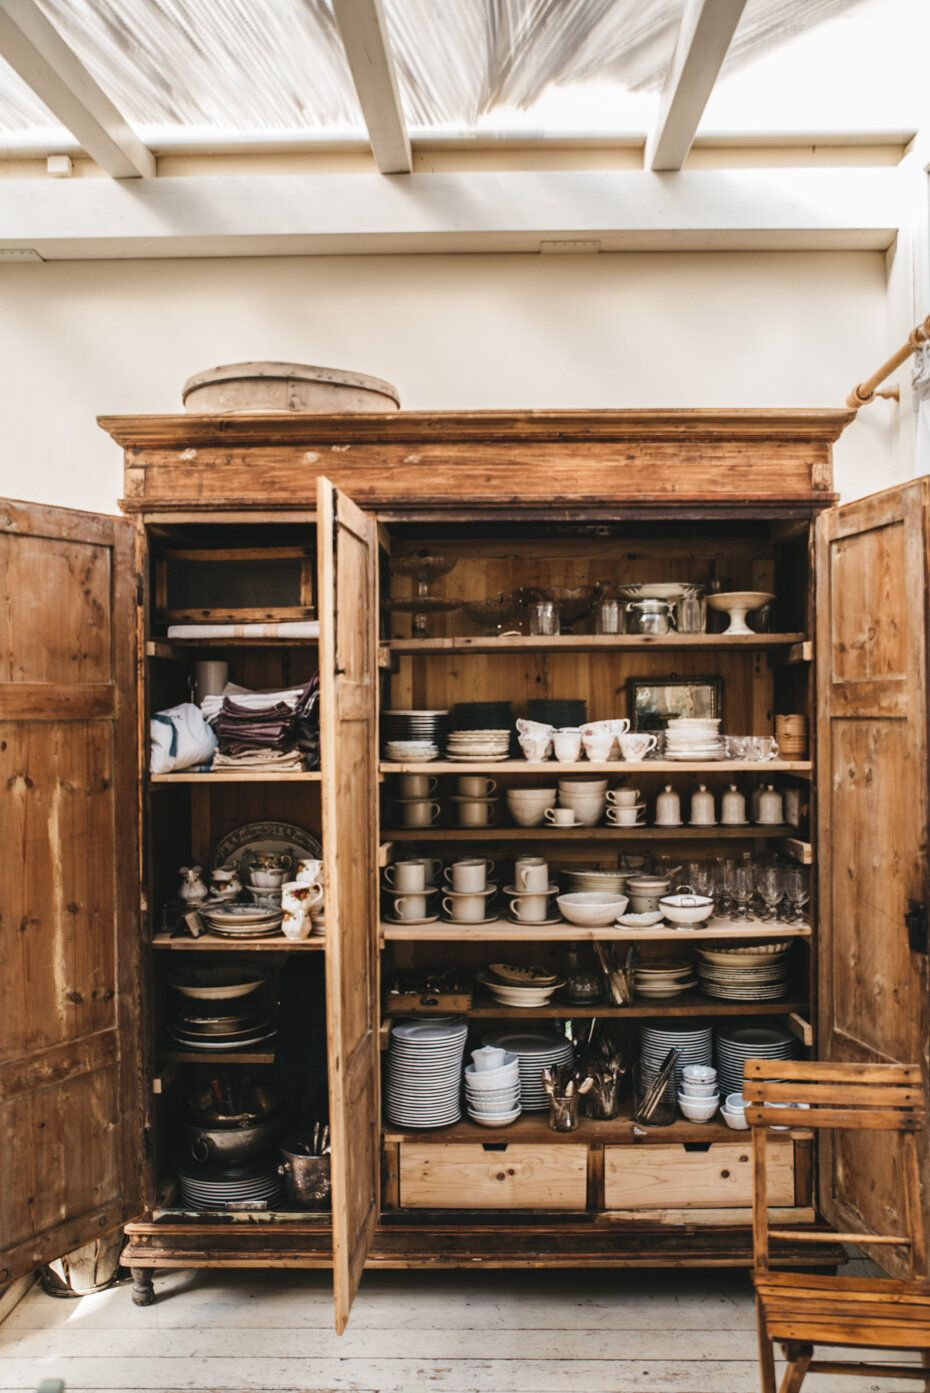 Cupboard shelves image by Mandy P on Kitchen Crazy in 2020 ...